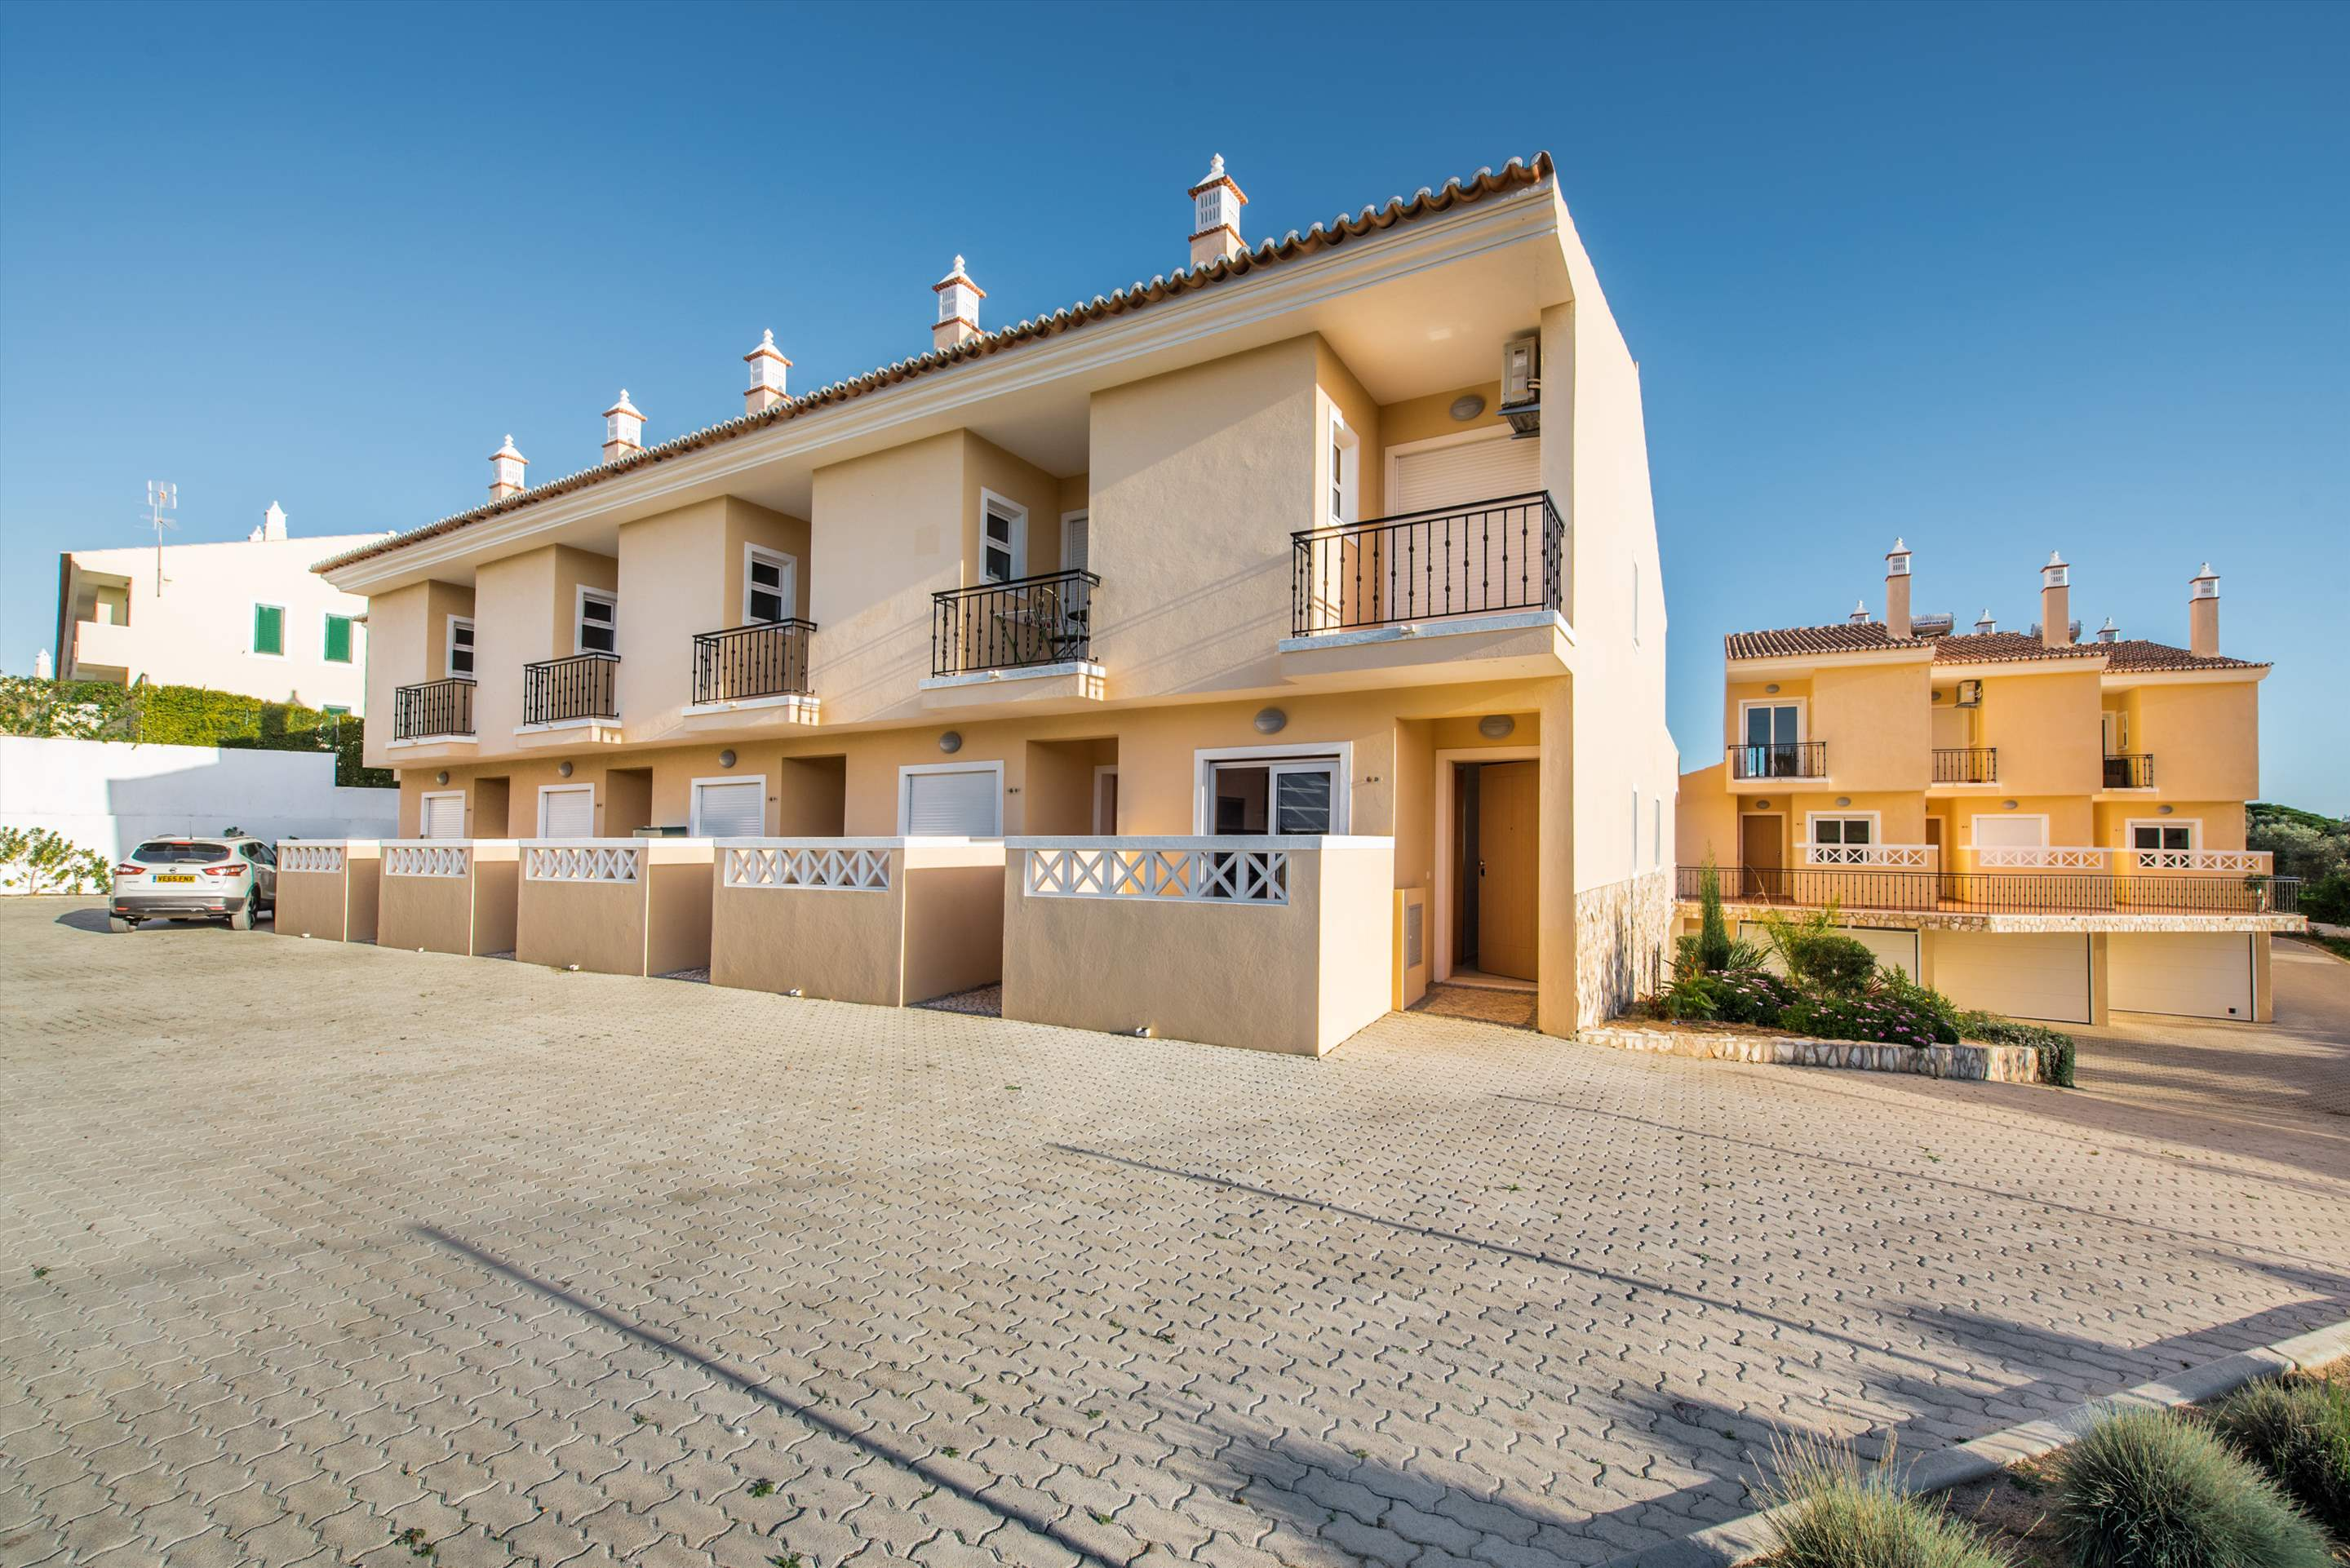 Townhouse Rosal 'D', 2 bedroom villa in Gale, Vale da Parra and Guia, Algarve Photo #20